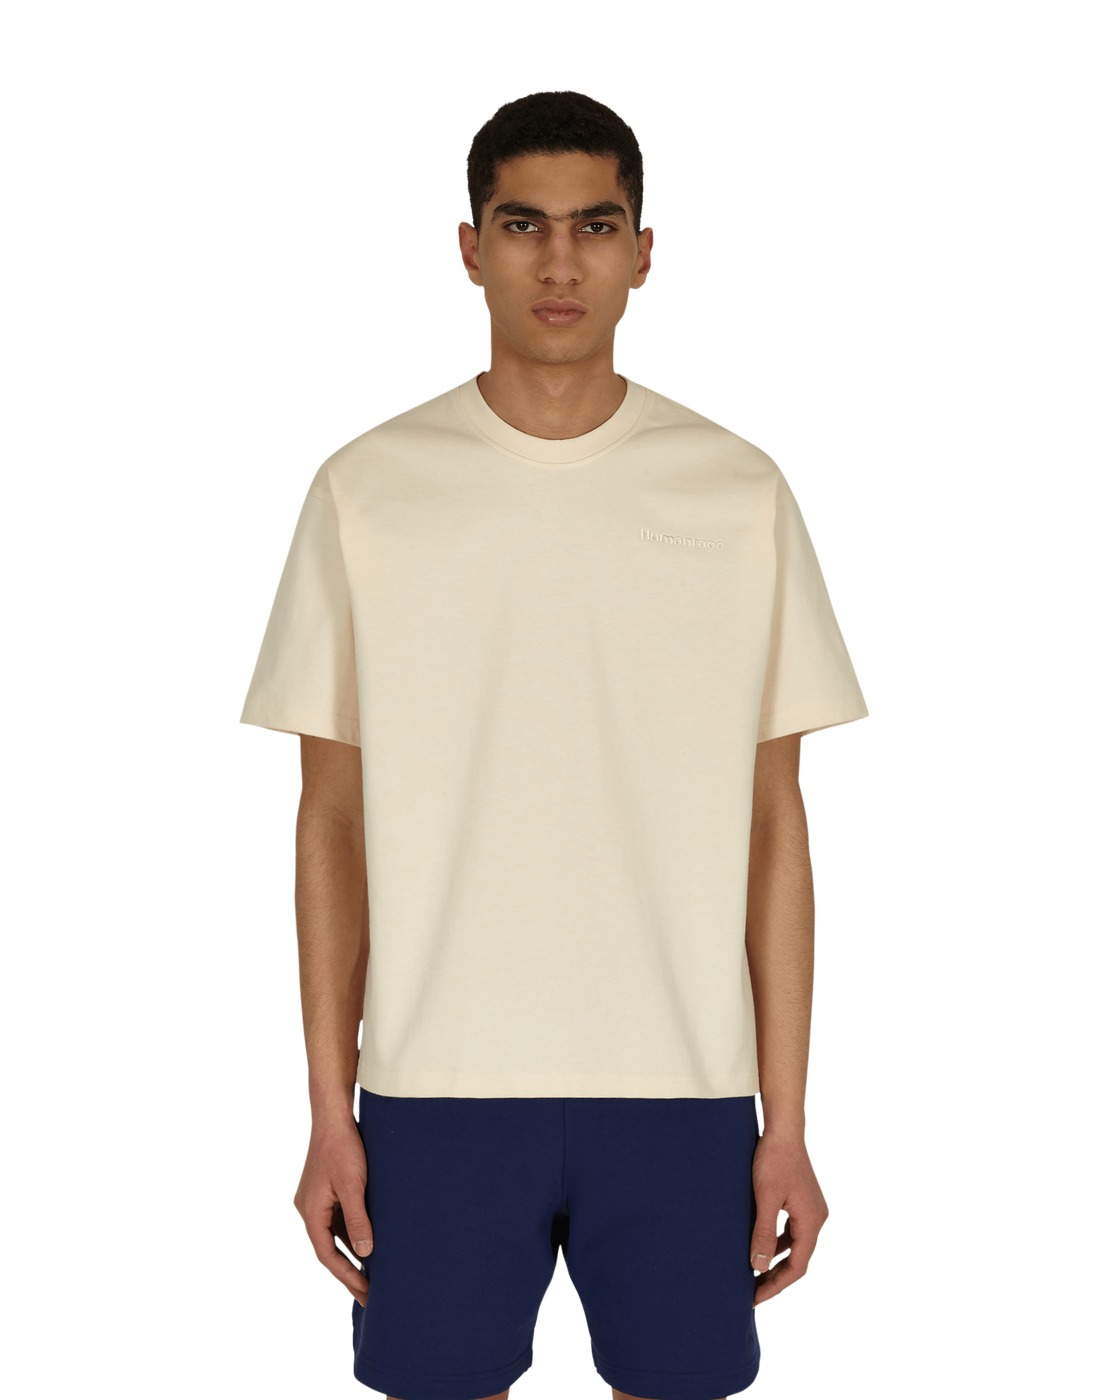 Photo: Adidas Originals Pharrell Williams Basics T Shirt Ecru Tint